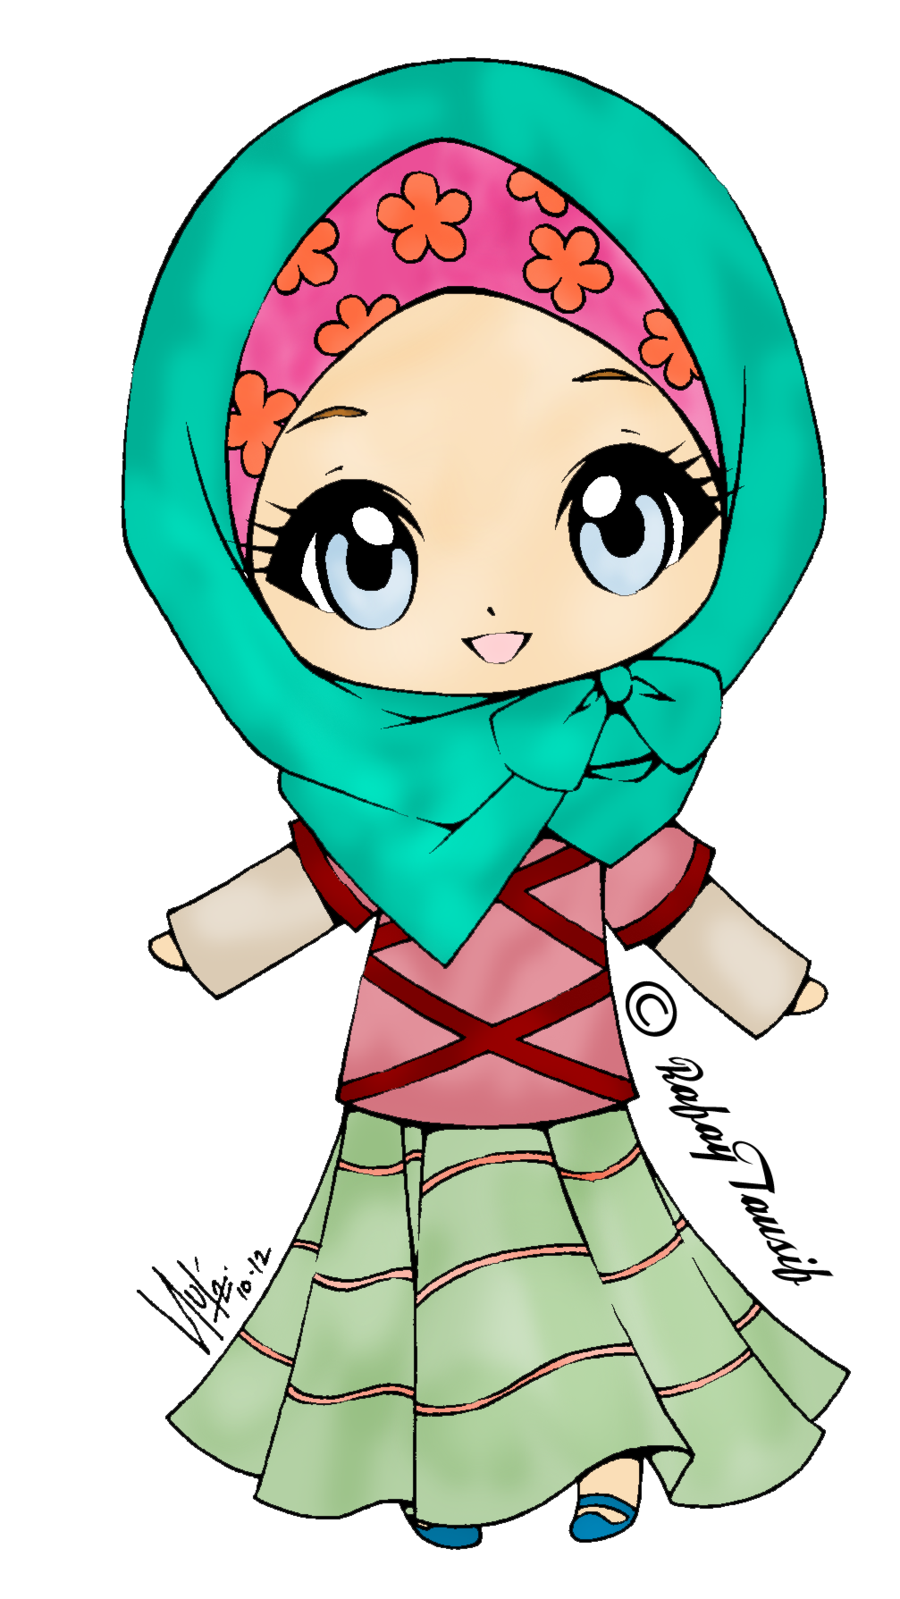 Flower crown on girl clipart clip free library Anime Clipart Lady Free collection | Download and share Anime ... clip free library